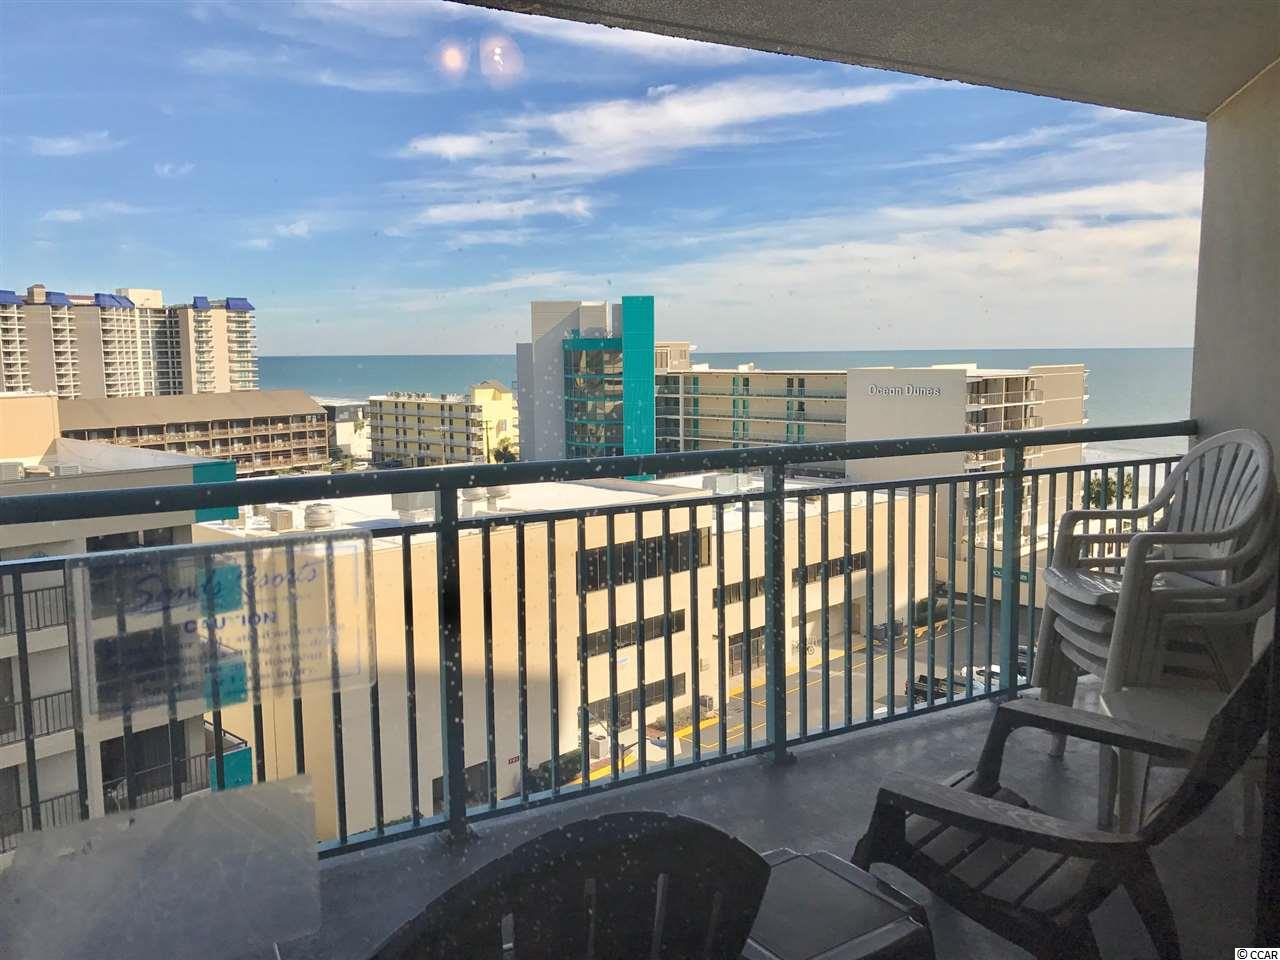 Condo For Sale At Sand Dunes Phii In Myrtle Beach South Carolina Unit Listing Mls Number 1702152